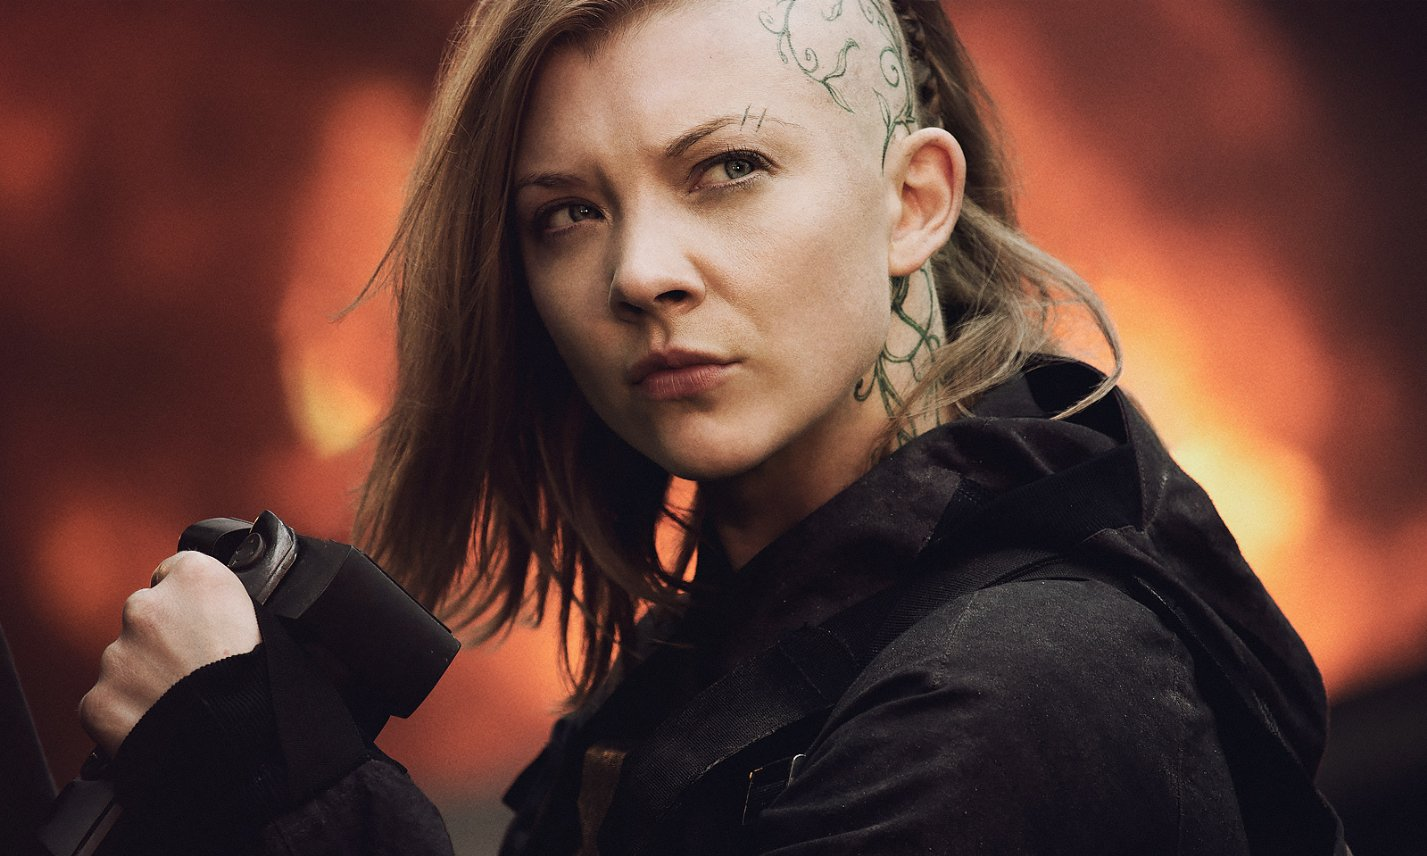 The Hunger Games - Mockingjay - Part 1 (2014) Natalie Dormer head tattoo